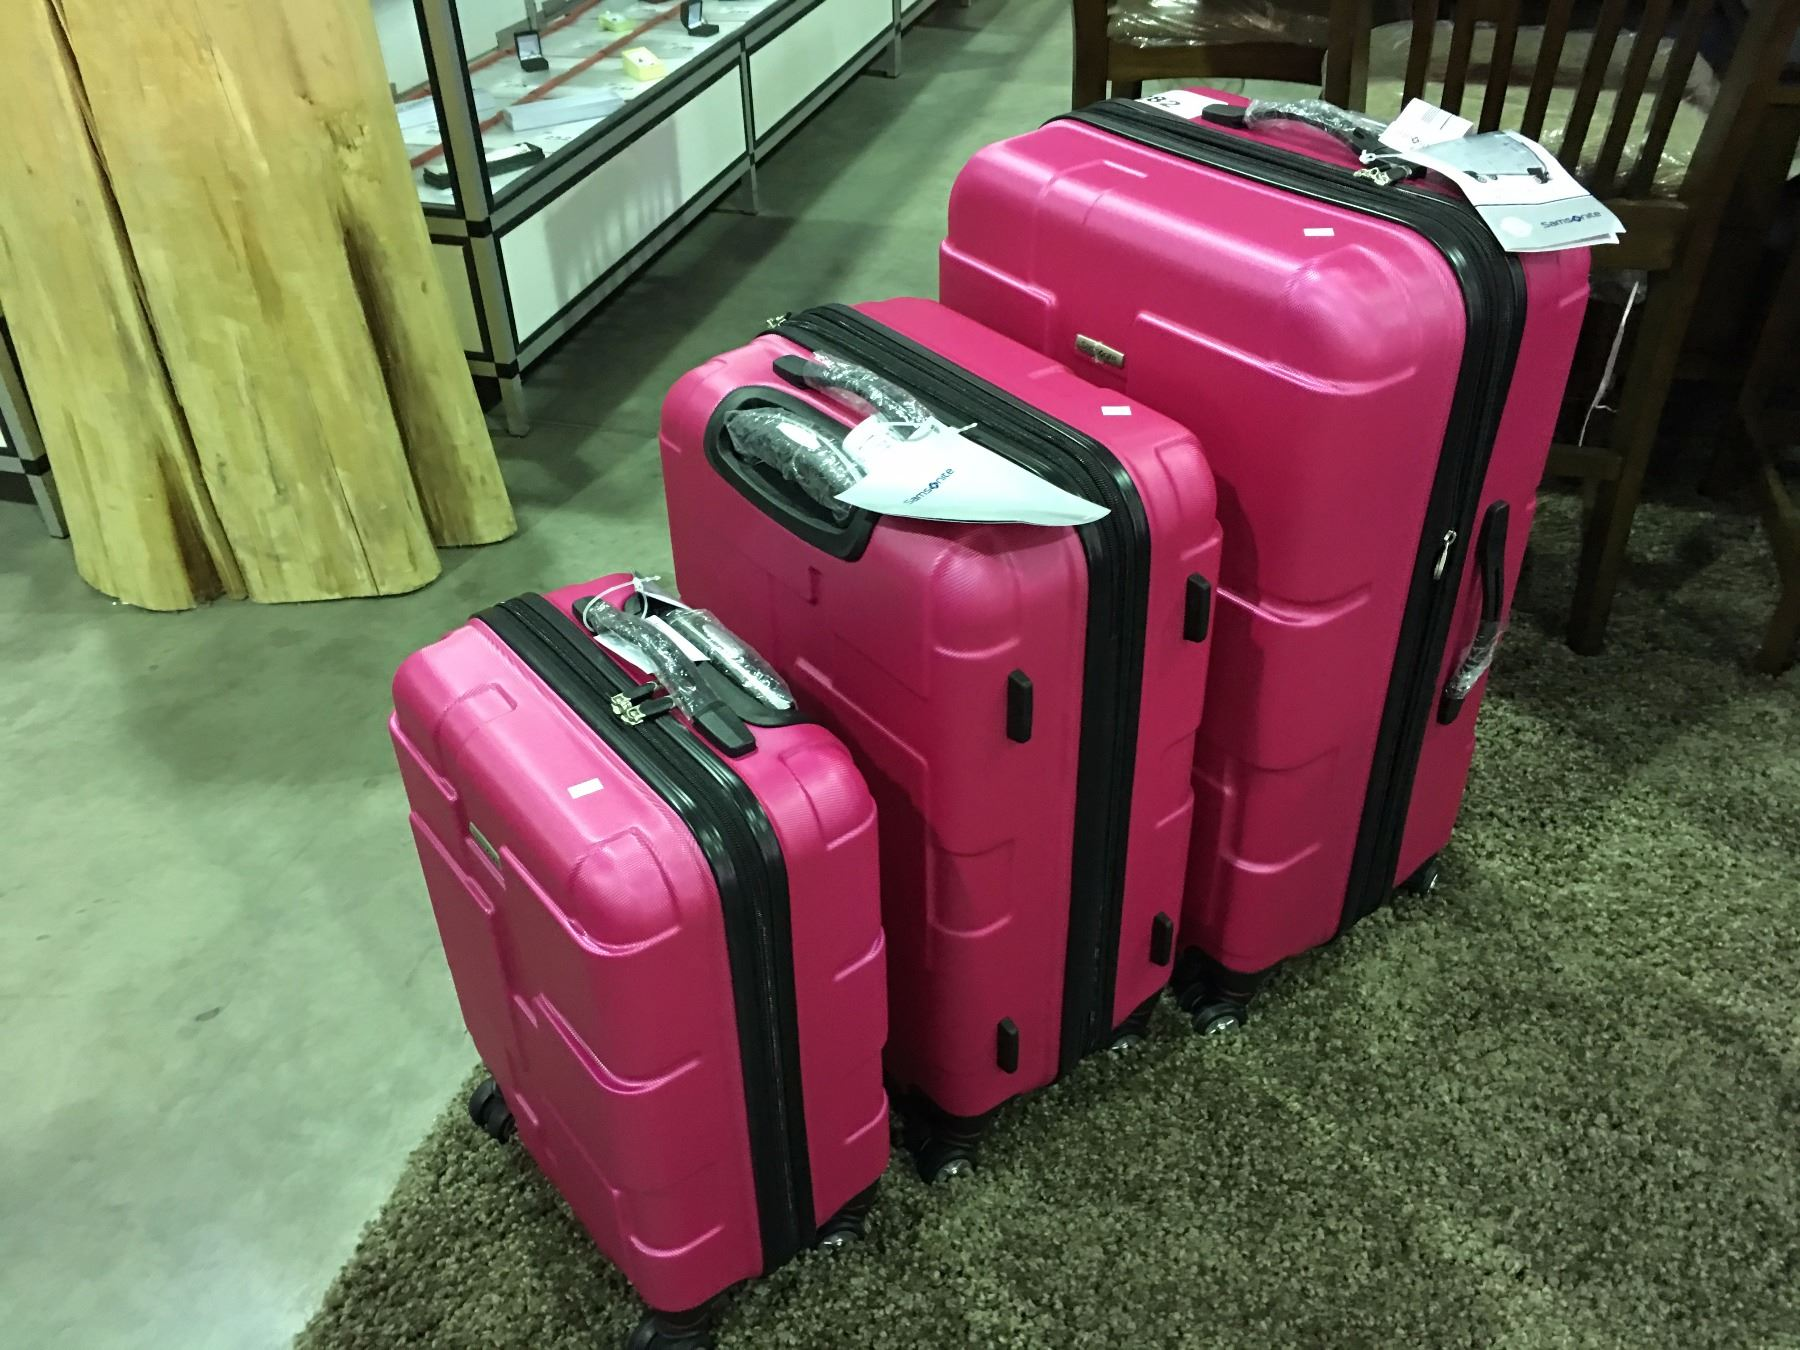 6b733887a7ce 20+ Samsonite Spinner Luggage Set Pink Pictures and Ideas on Weric